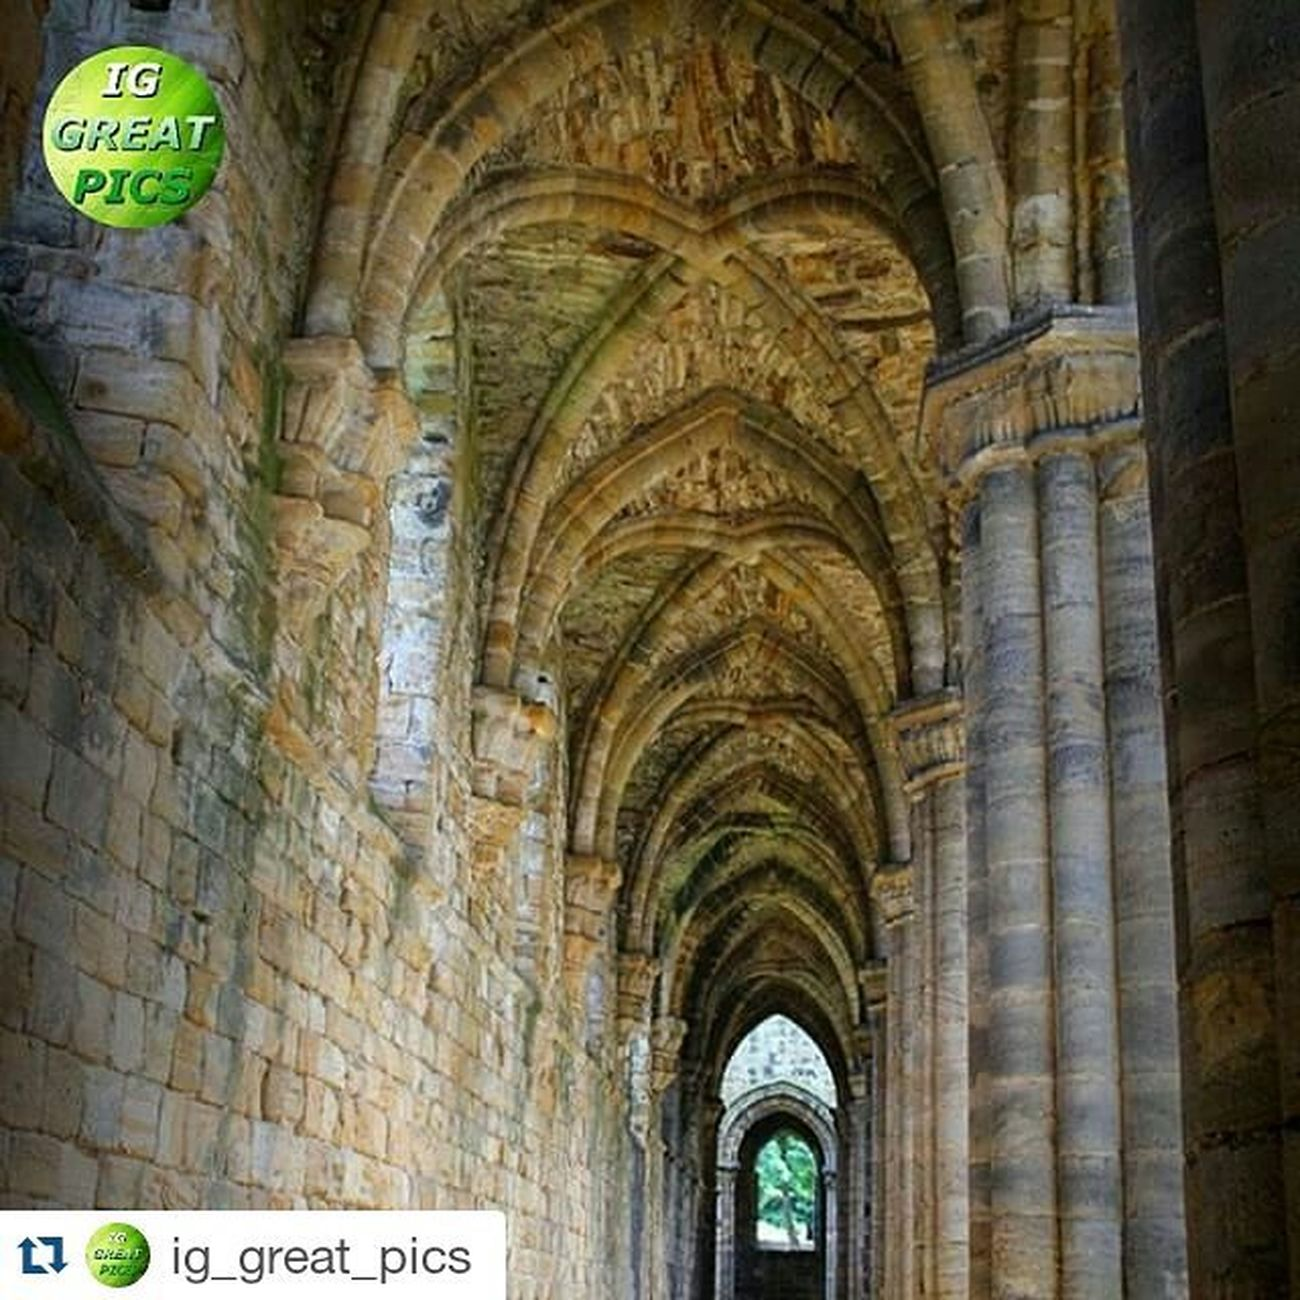 """Thankyou so much for the feature i really appreciate it, its always an honour to have my photos presented on you're page 😊👍Repost @ig_great_pics ・・・ July 12, 2015 • 💥ⓟⓡⓞⓤⓓⓛⓨ ⓟⓡⓔⓢⓔⓝⓣⓢ💥 ================================= FEATURED: Architectures PLACE: Kirkstall Abbey. Leeds. West Yorkshire - UK PHOTO BY:  @unitedk_photos  Congratulations !! 🌟👏🌟 Thanks for sharing with us this great pic!! Please IG friends show your support by visiting their wonderful gallery !! 👍 ================================= 📌 No matter the quantity but the quality of our followers 📌 ➡ Follow @ig_great_pics®  Tag your photos with Ig_great_pics ⛔ Photos must be your own ⛔ ================================= 📝 """"Photography is a tool for dealing with things that everybody knows, but nobody pays attention to"""" (Emmet Gowing) ================================= Ig_great_pics® Abbey Architecture Perspective Archs Kirkstall Unitedkinhdom Corridors  Gp_unitedk_photos Beautiful Architectureoftheday Ig_great_pics_architecture =================================  PLEASE !! Don't follow to unfollow  ================================== • • 👇"""